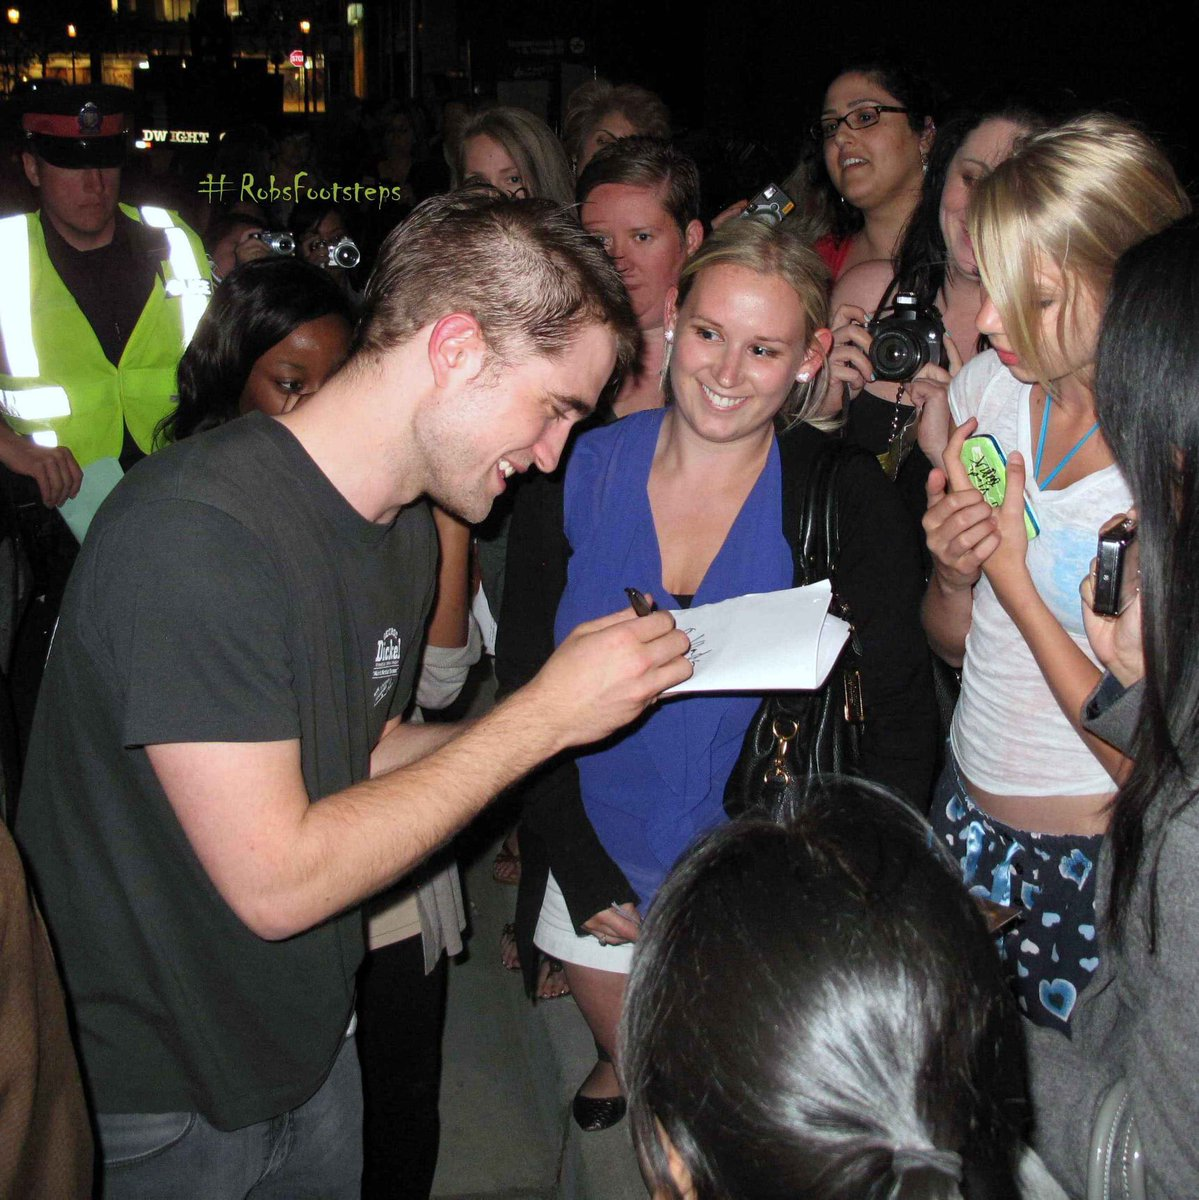 FLASHBACK: On a day like today exactly nine years ago, July 8th 2011, #RobertPattinson sharing time with fans after a day of filming #Cosmopolis in Toronto, Canada.pic.twitter.com/ujlHTC9GX7